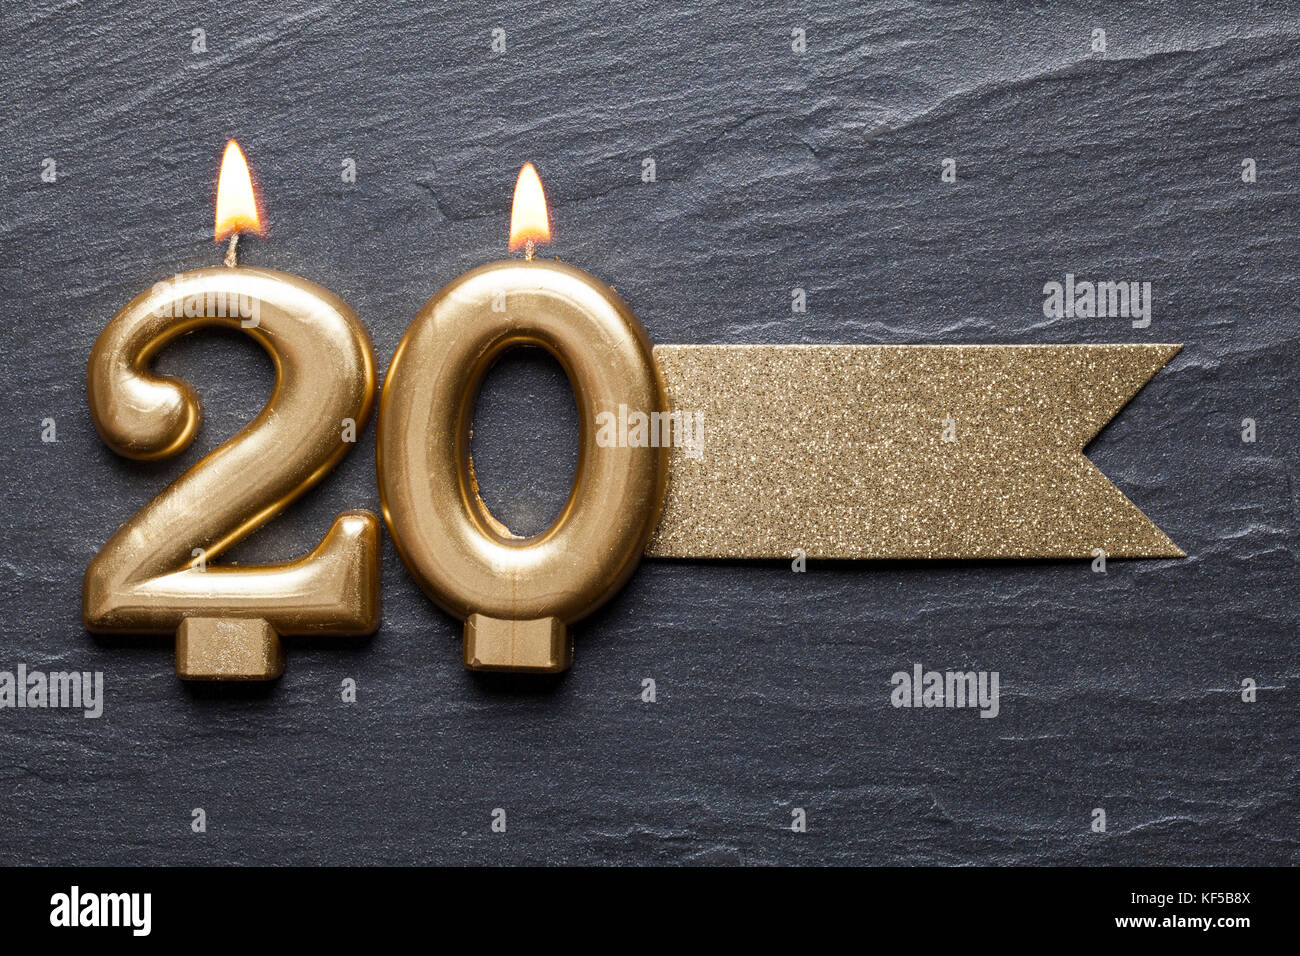 Gold number 20 celebration candle with glitter label - Stock Image